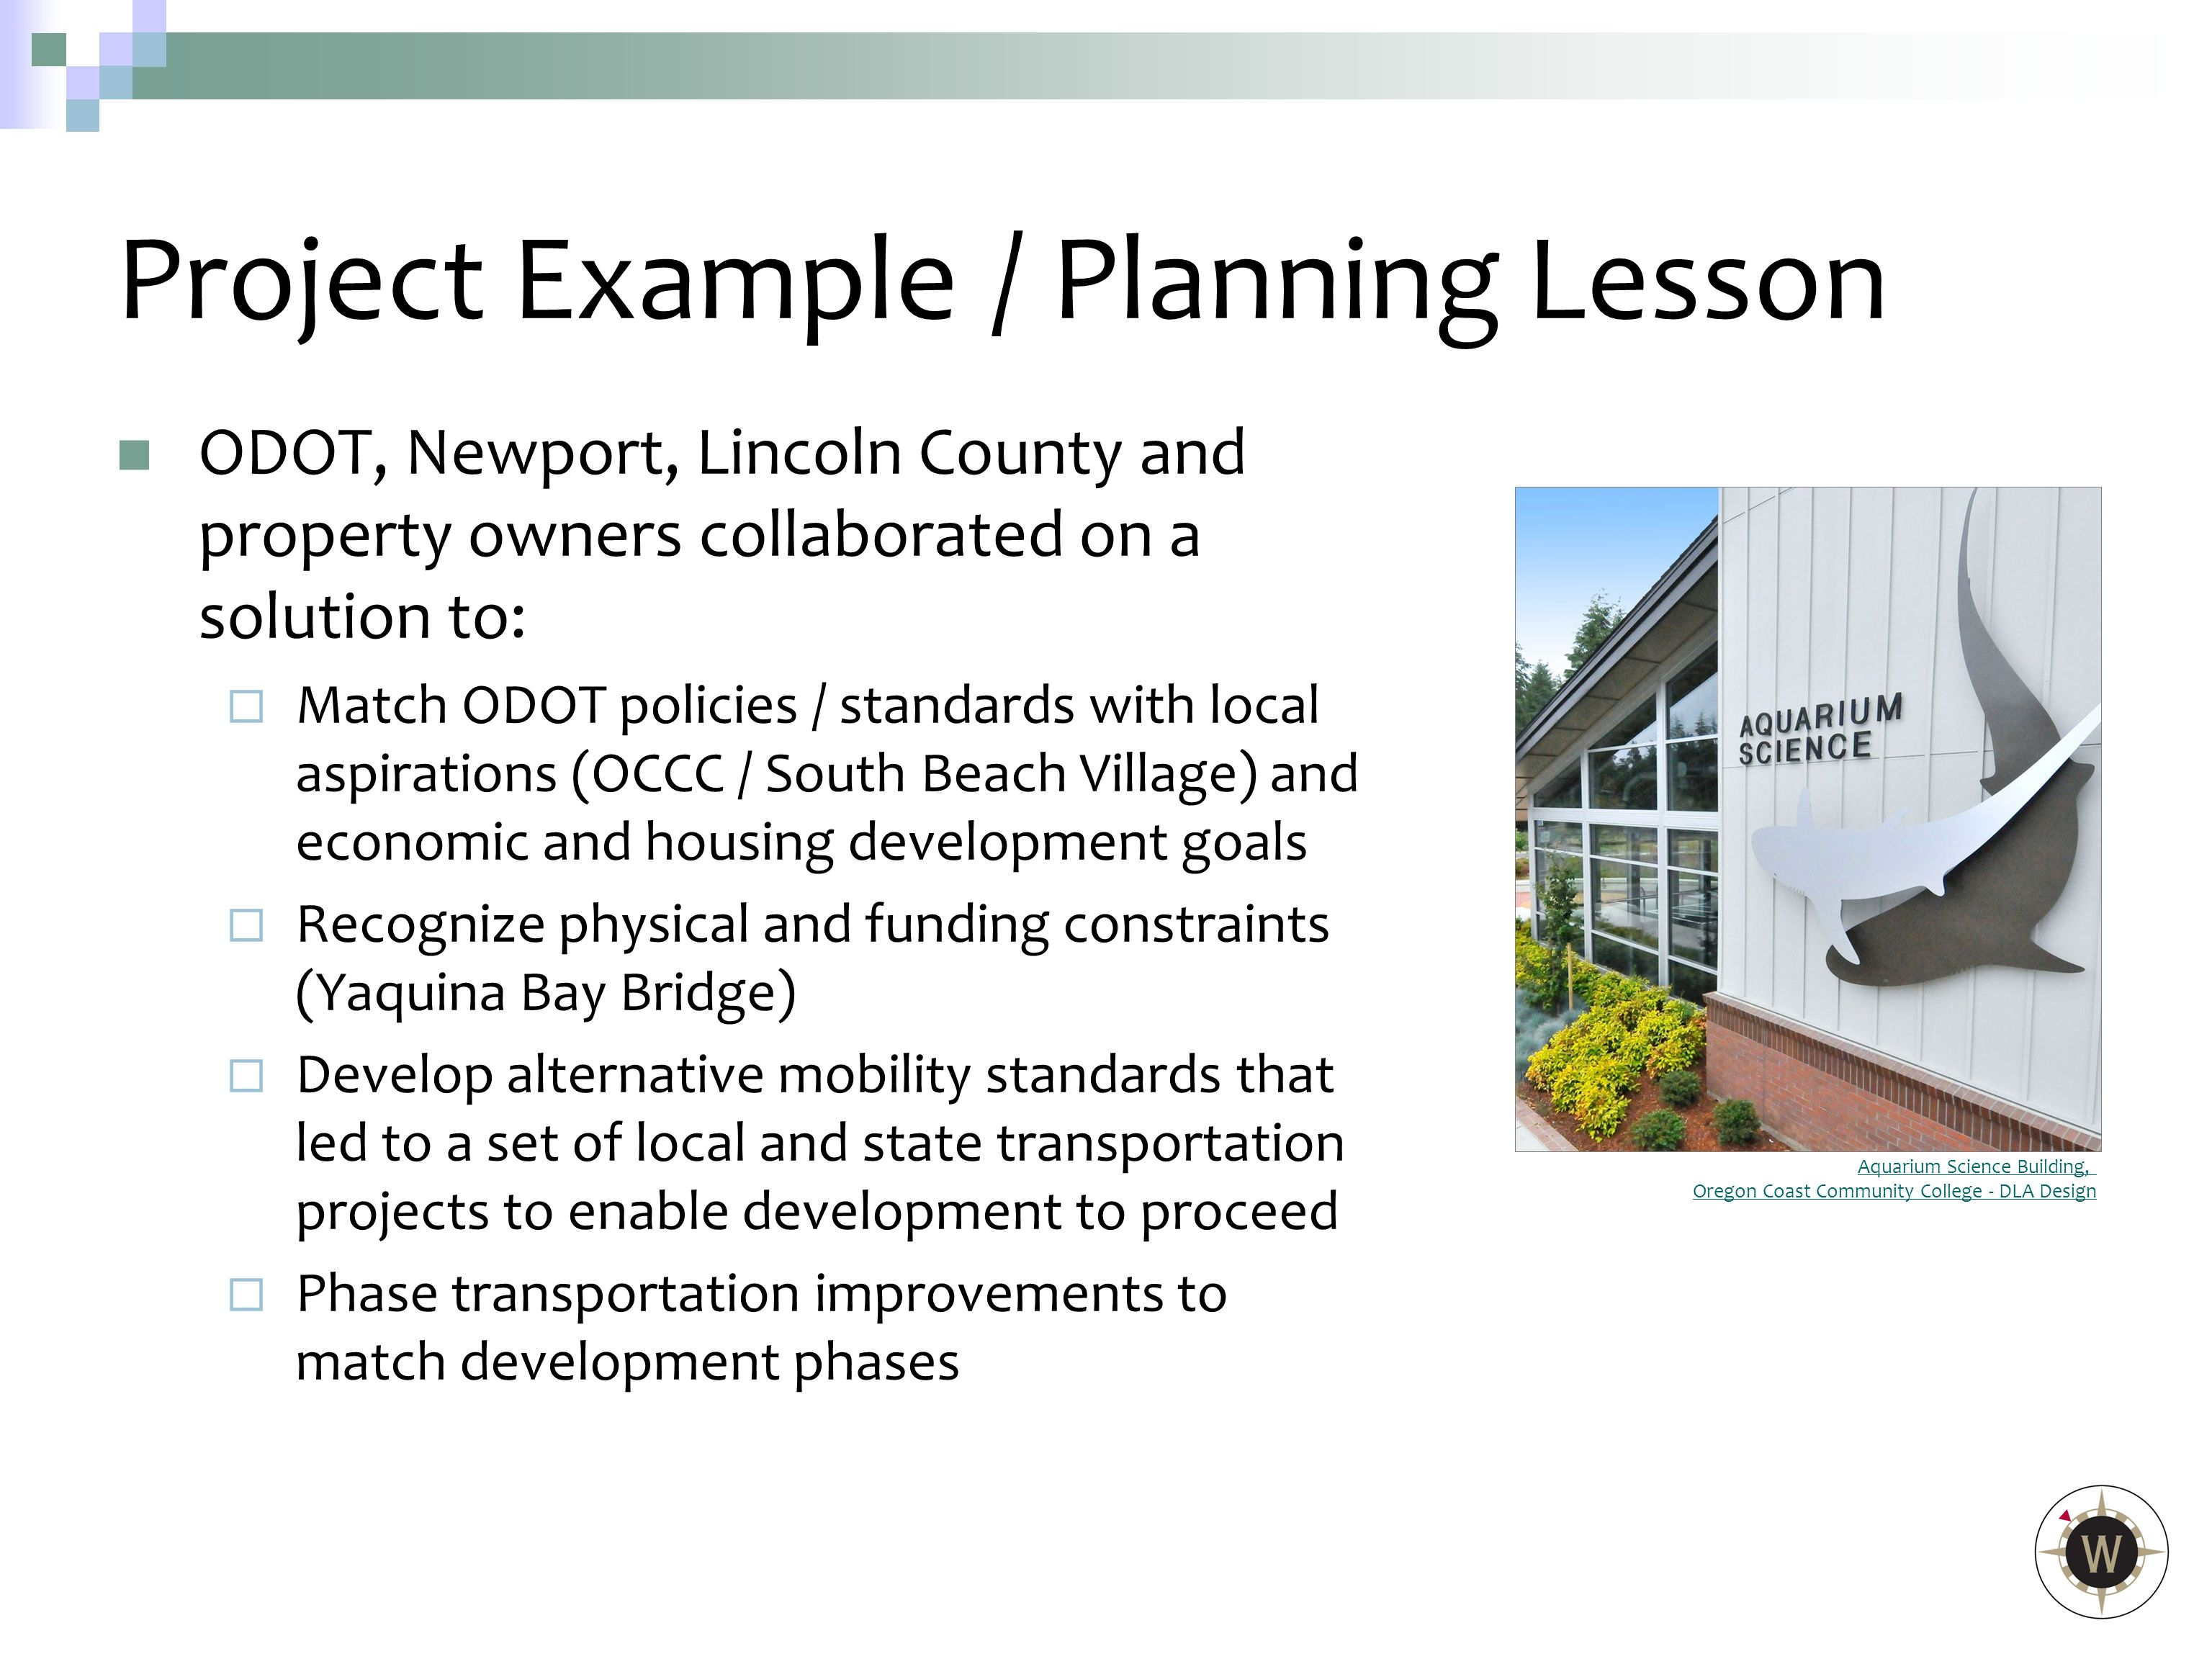 ODOT, Newport, Lincoln County and property owners collaborated on a solution to:  Match ODOT policies / standards with local aspirations (OCCC / South Beach Village) and economic and housing development goals  Recognize physical and funding constraints (Yaquina Bay Bridge)  Develop alternative mobility standards that led to a set of local and state transportation projects to enable development to proceed  Phase transportation improvements to match development phases Project Example/ Planning Lesson Aquarium Science Building, Oregon Coast Community College - DLA Design